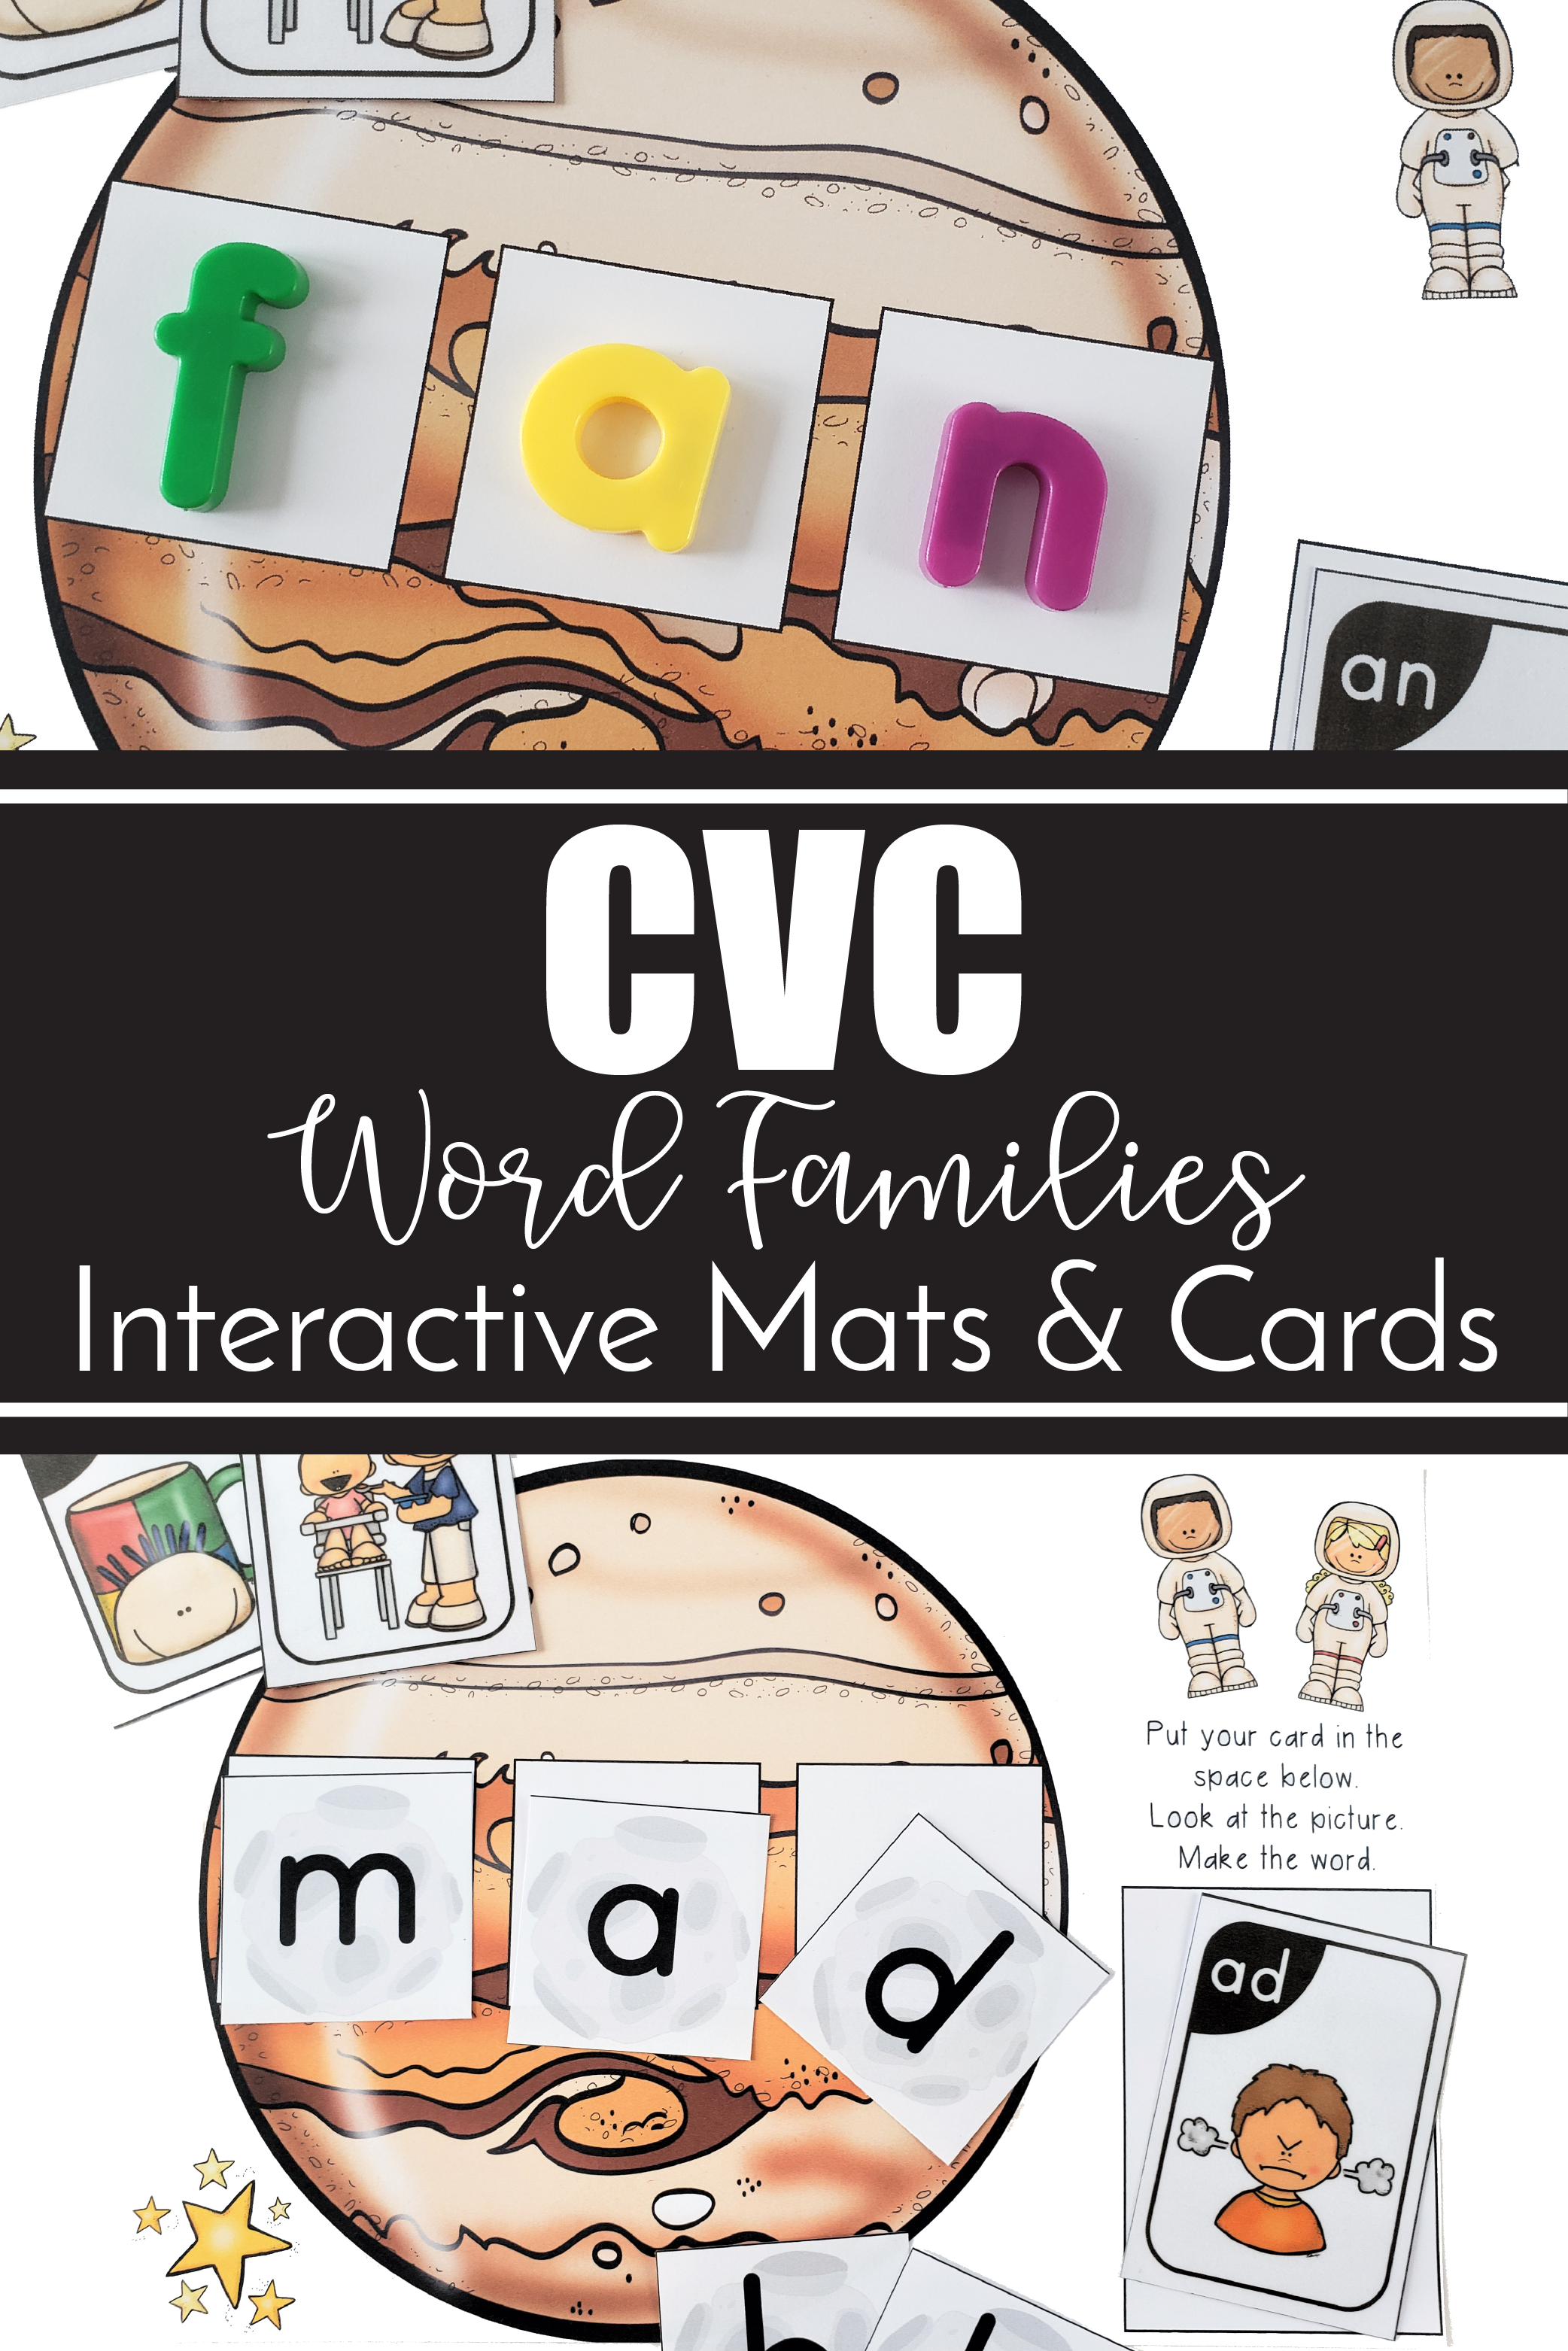 Cvc Word Family Interactive Mats And Cards Space Theme Cvc Word Families Cvc Words Word Families